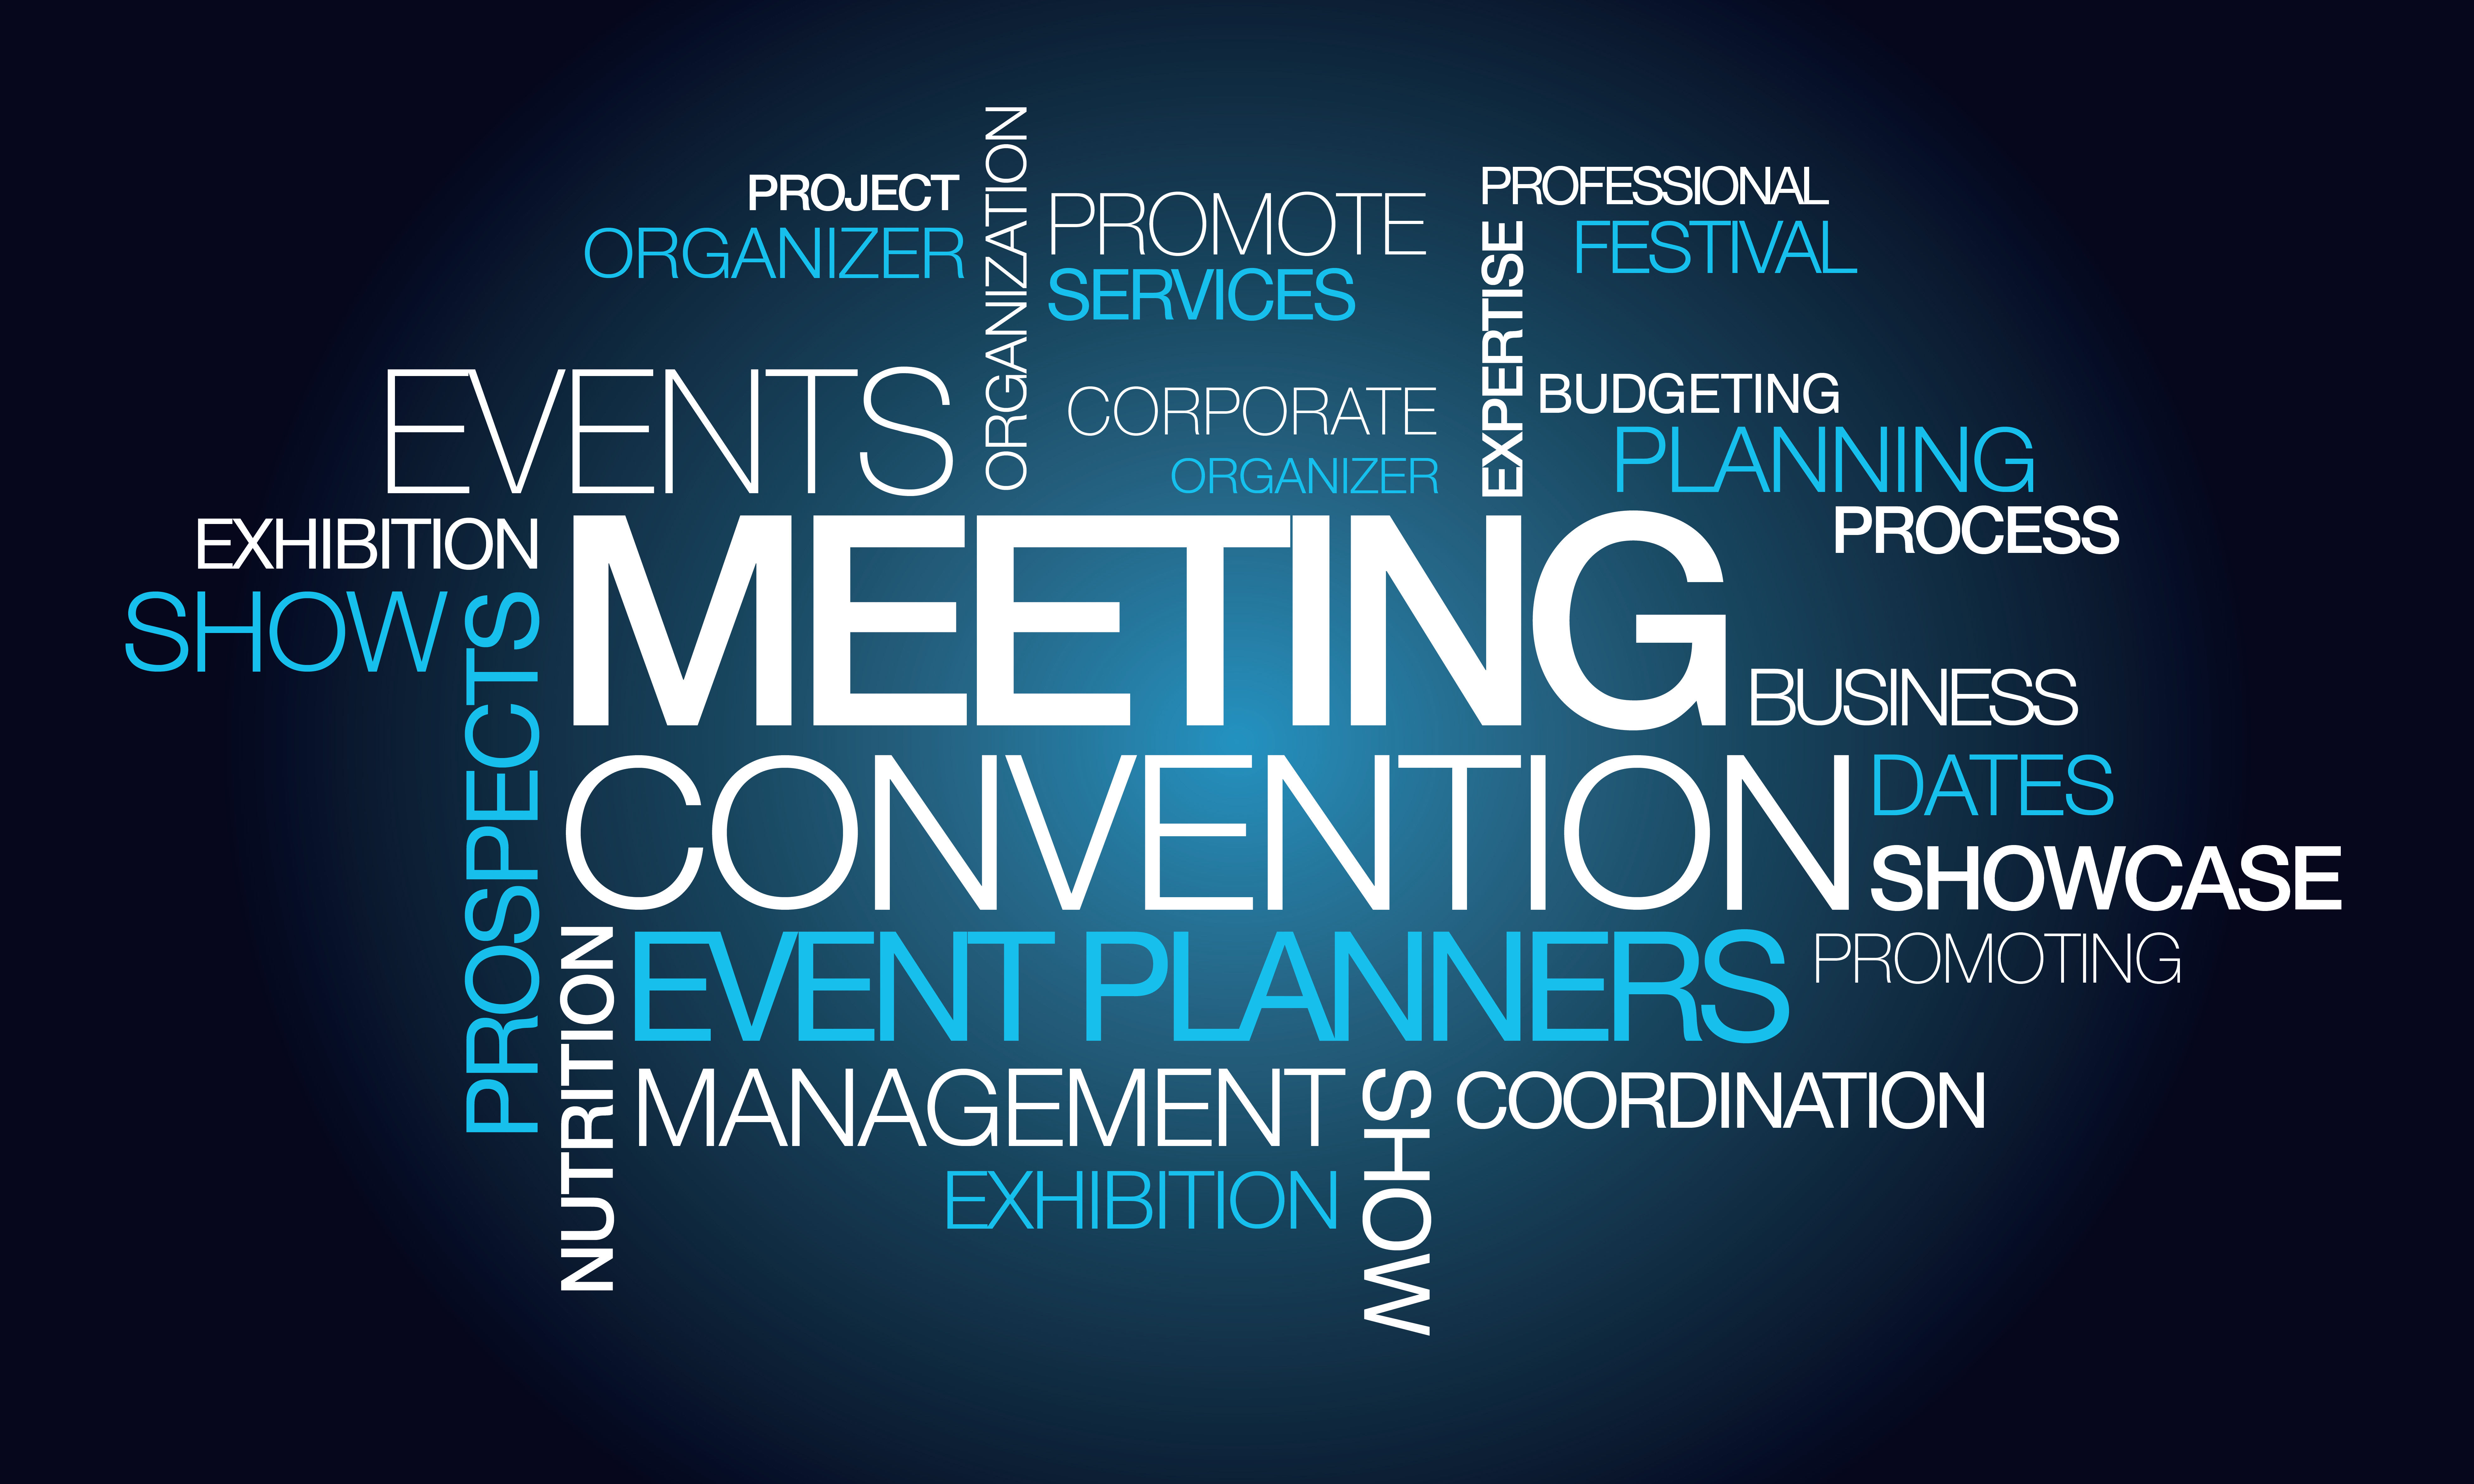 events planning and management Specialize in event planning & management for any industry | corporate events, government events, industry, parties & more | programs, projects & events.